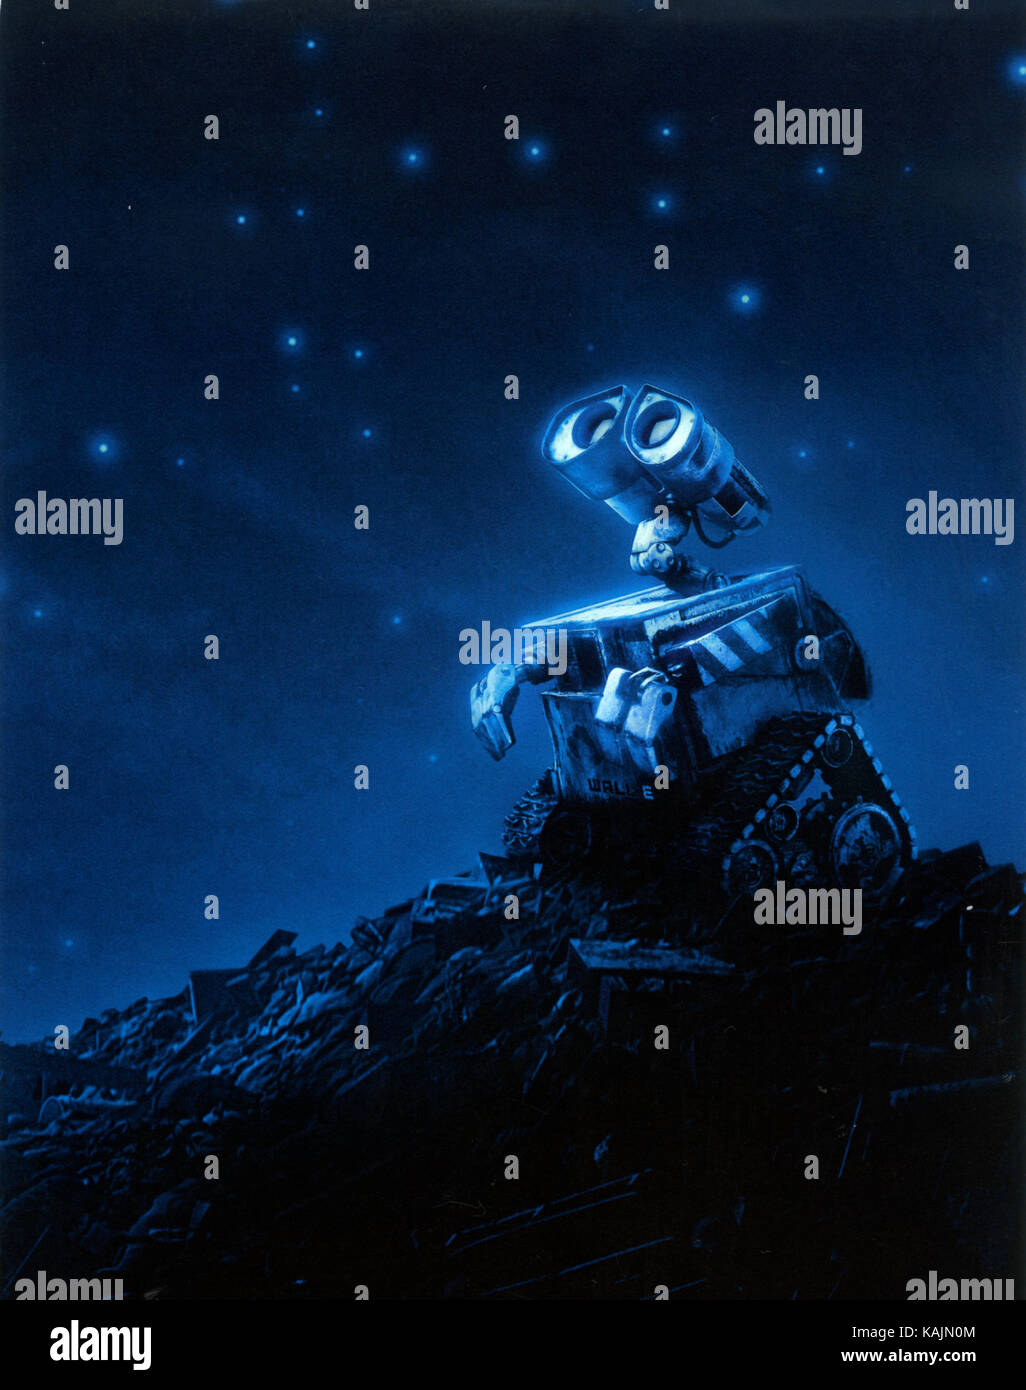 WALL-E 2008 Walt Disney Pictures computer-Animation Film Stockbild